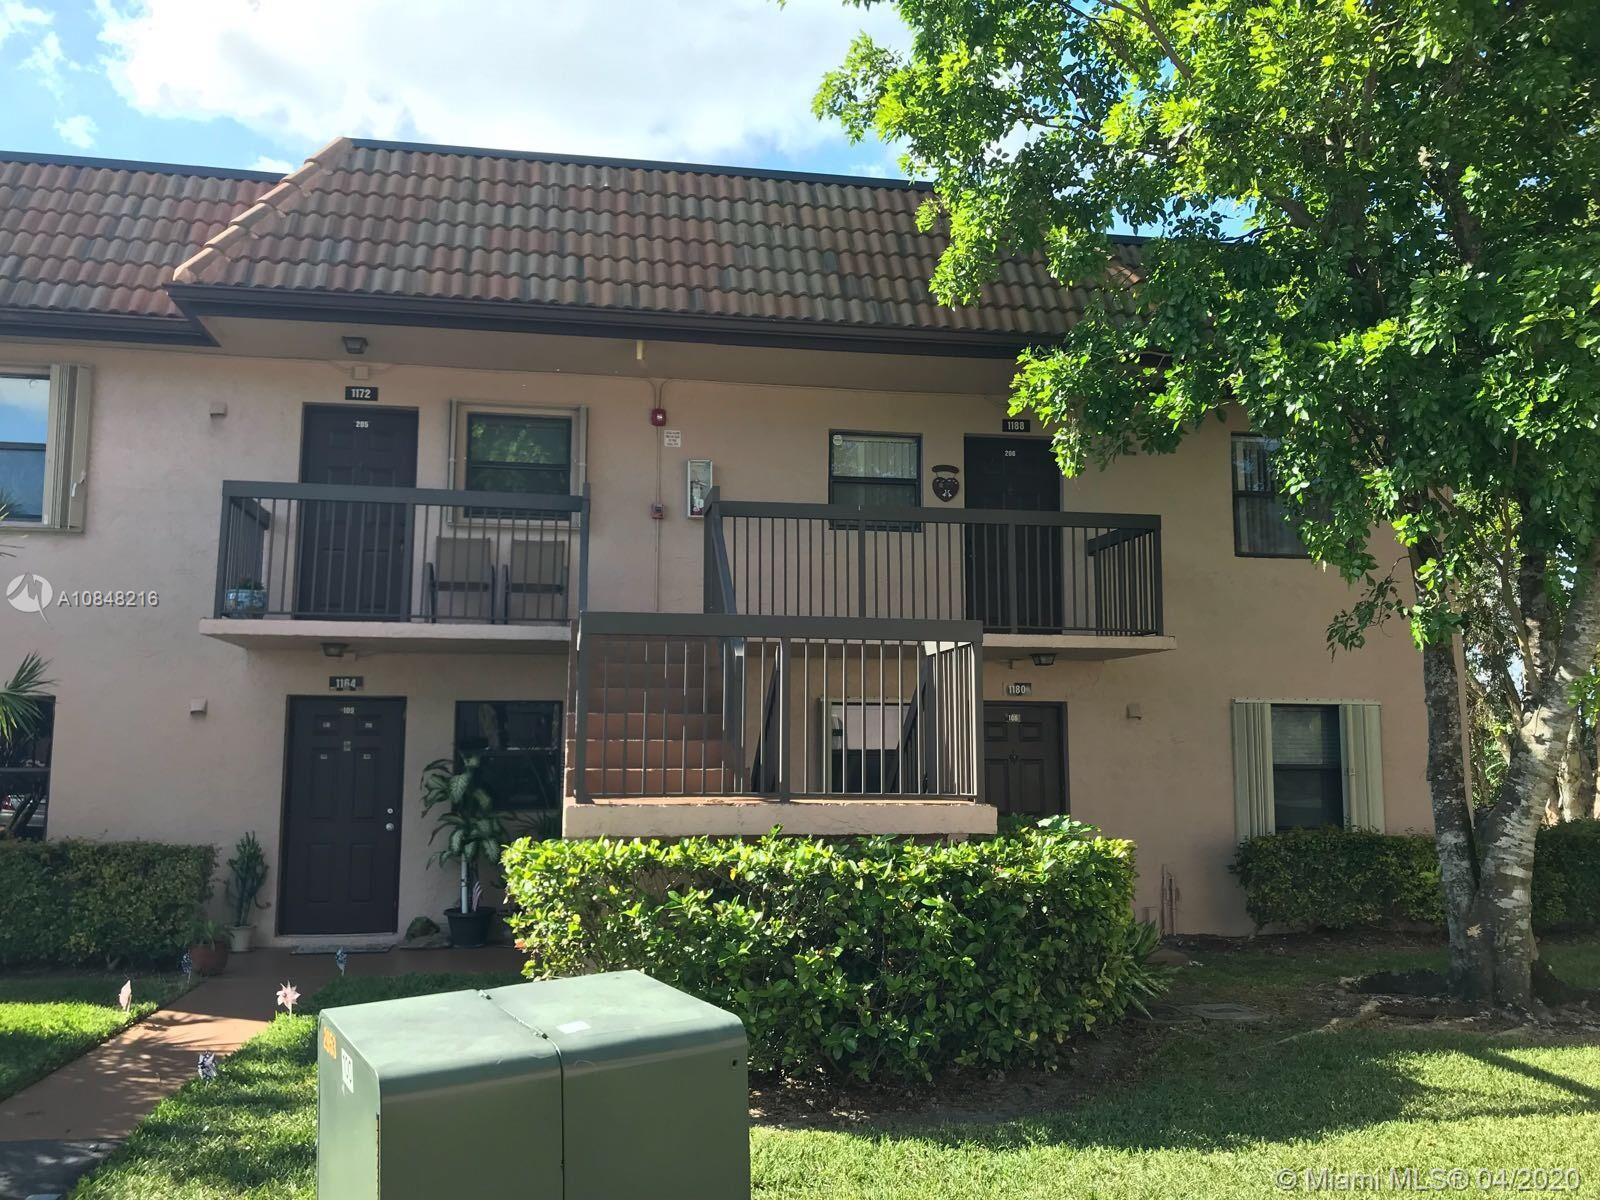 Spectacular Renovated 2bed 2bath, first floor, corner unit with lake view. Low maintenance (HOA) Excellent investment opportunity, currently rented until Feb 2021. Screened in patio with storage, accordion shutters and fans in both rooms and living area. Community pool & tennis court. (AC unit is 15 months old, dishwasher is 1 year old)